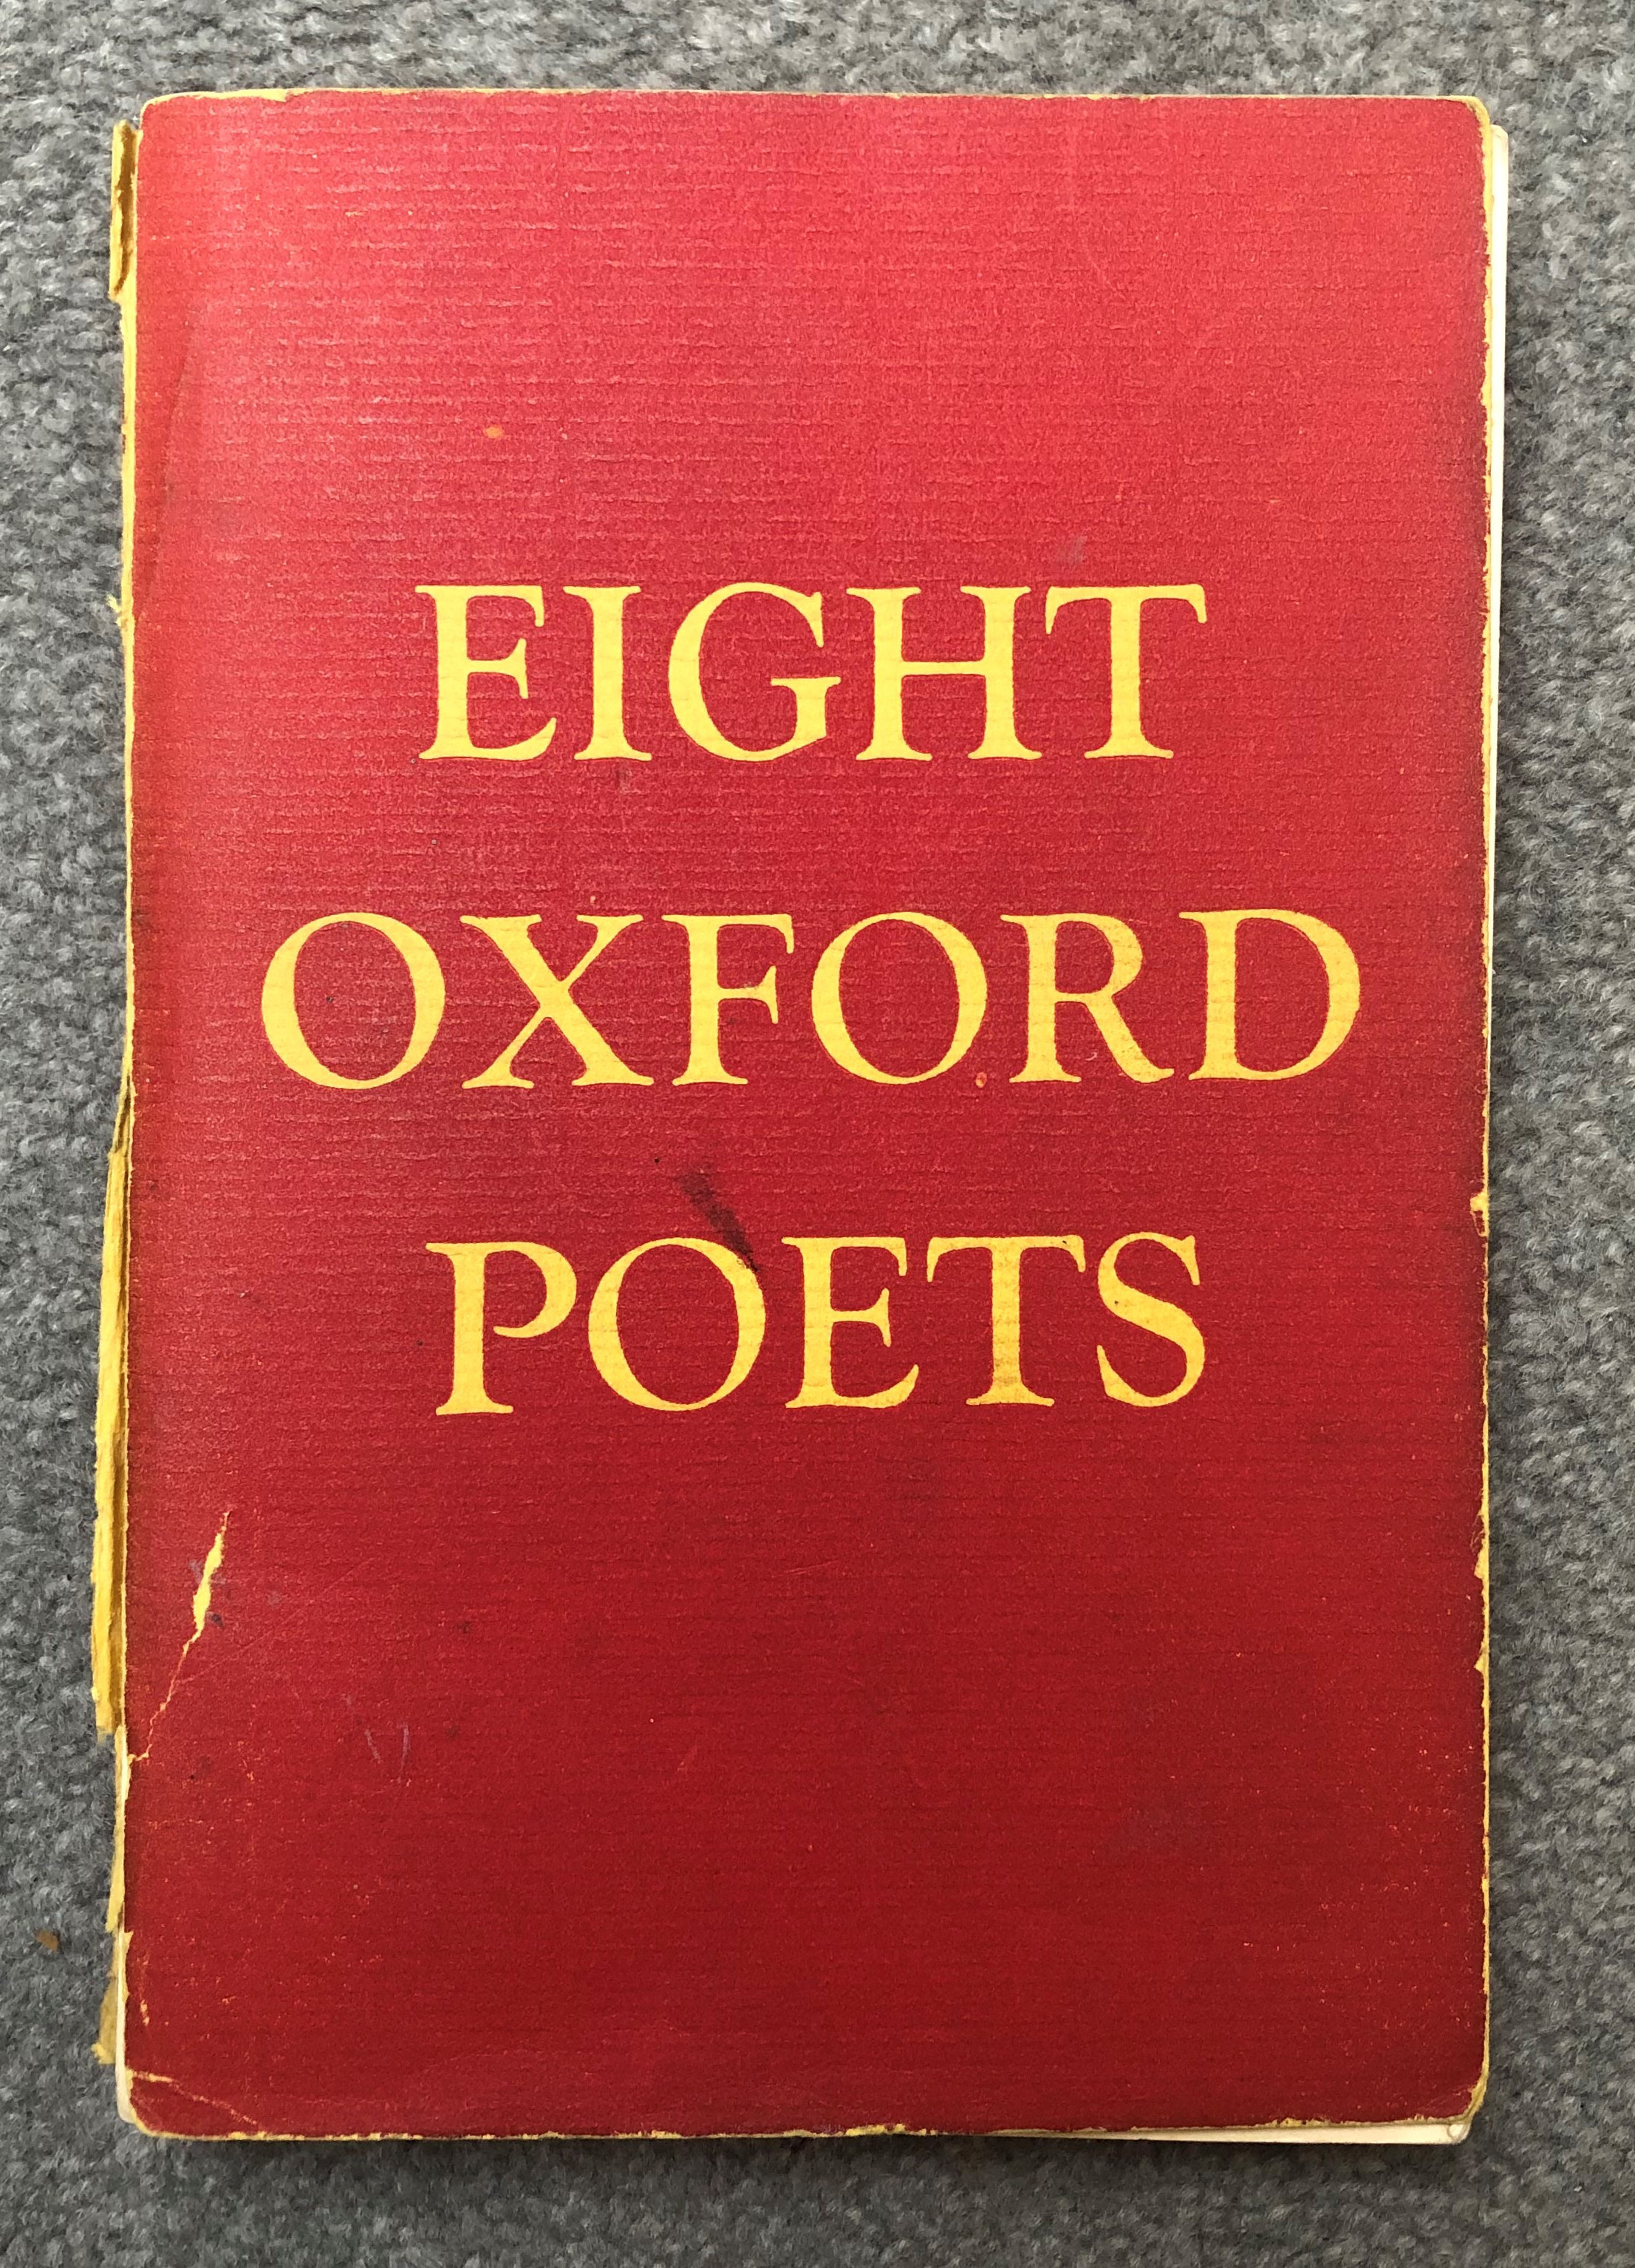 image shows the cover of a book titled eight oxford poets, the cover of the book is red and the title is printed in large yellow font